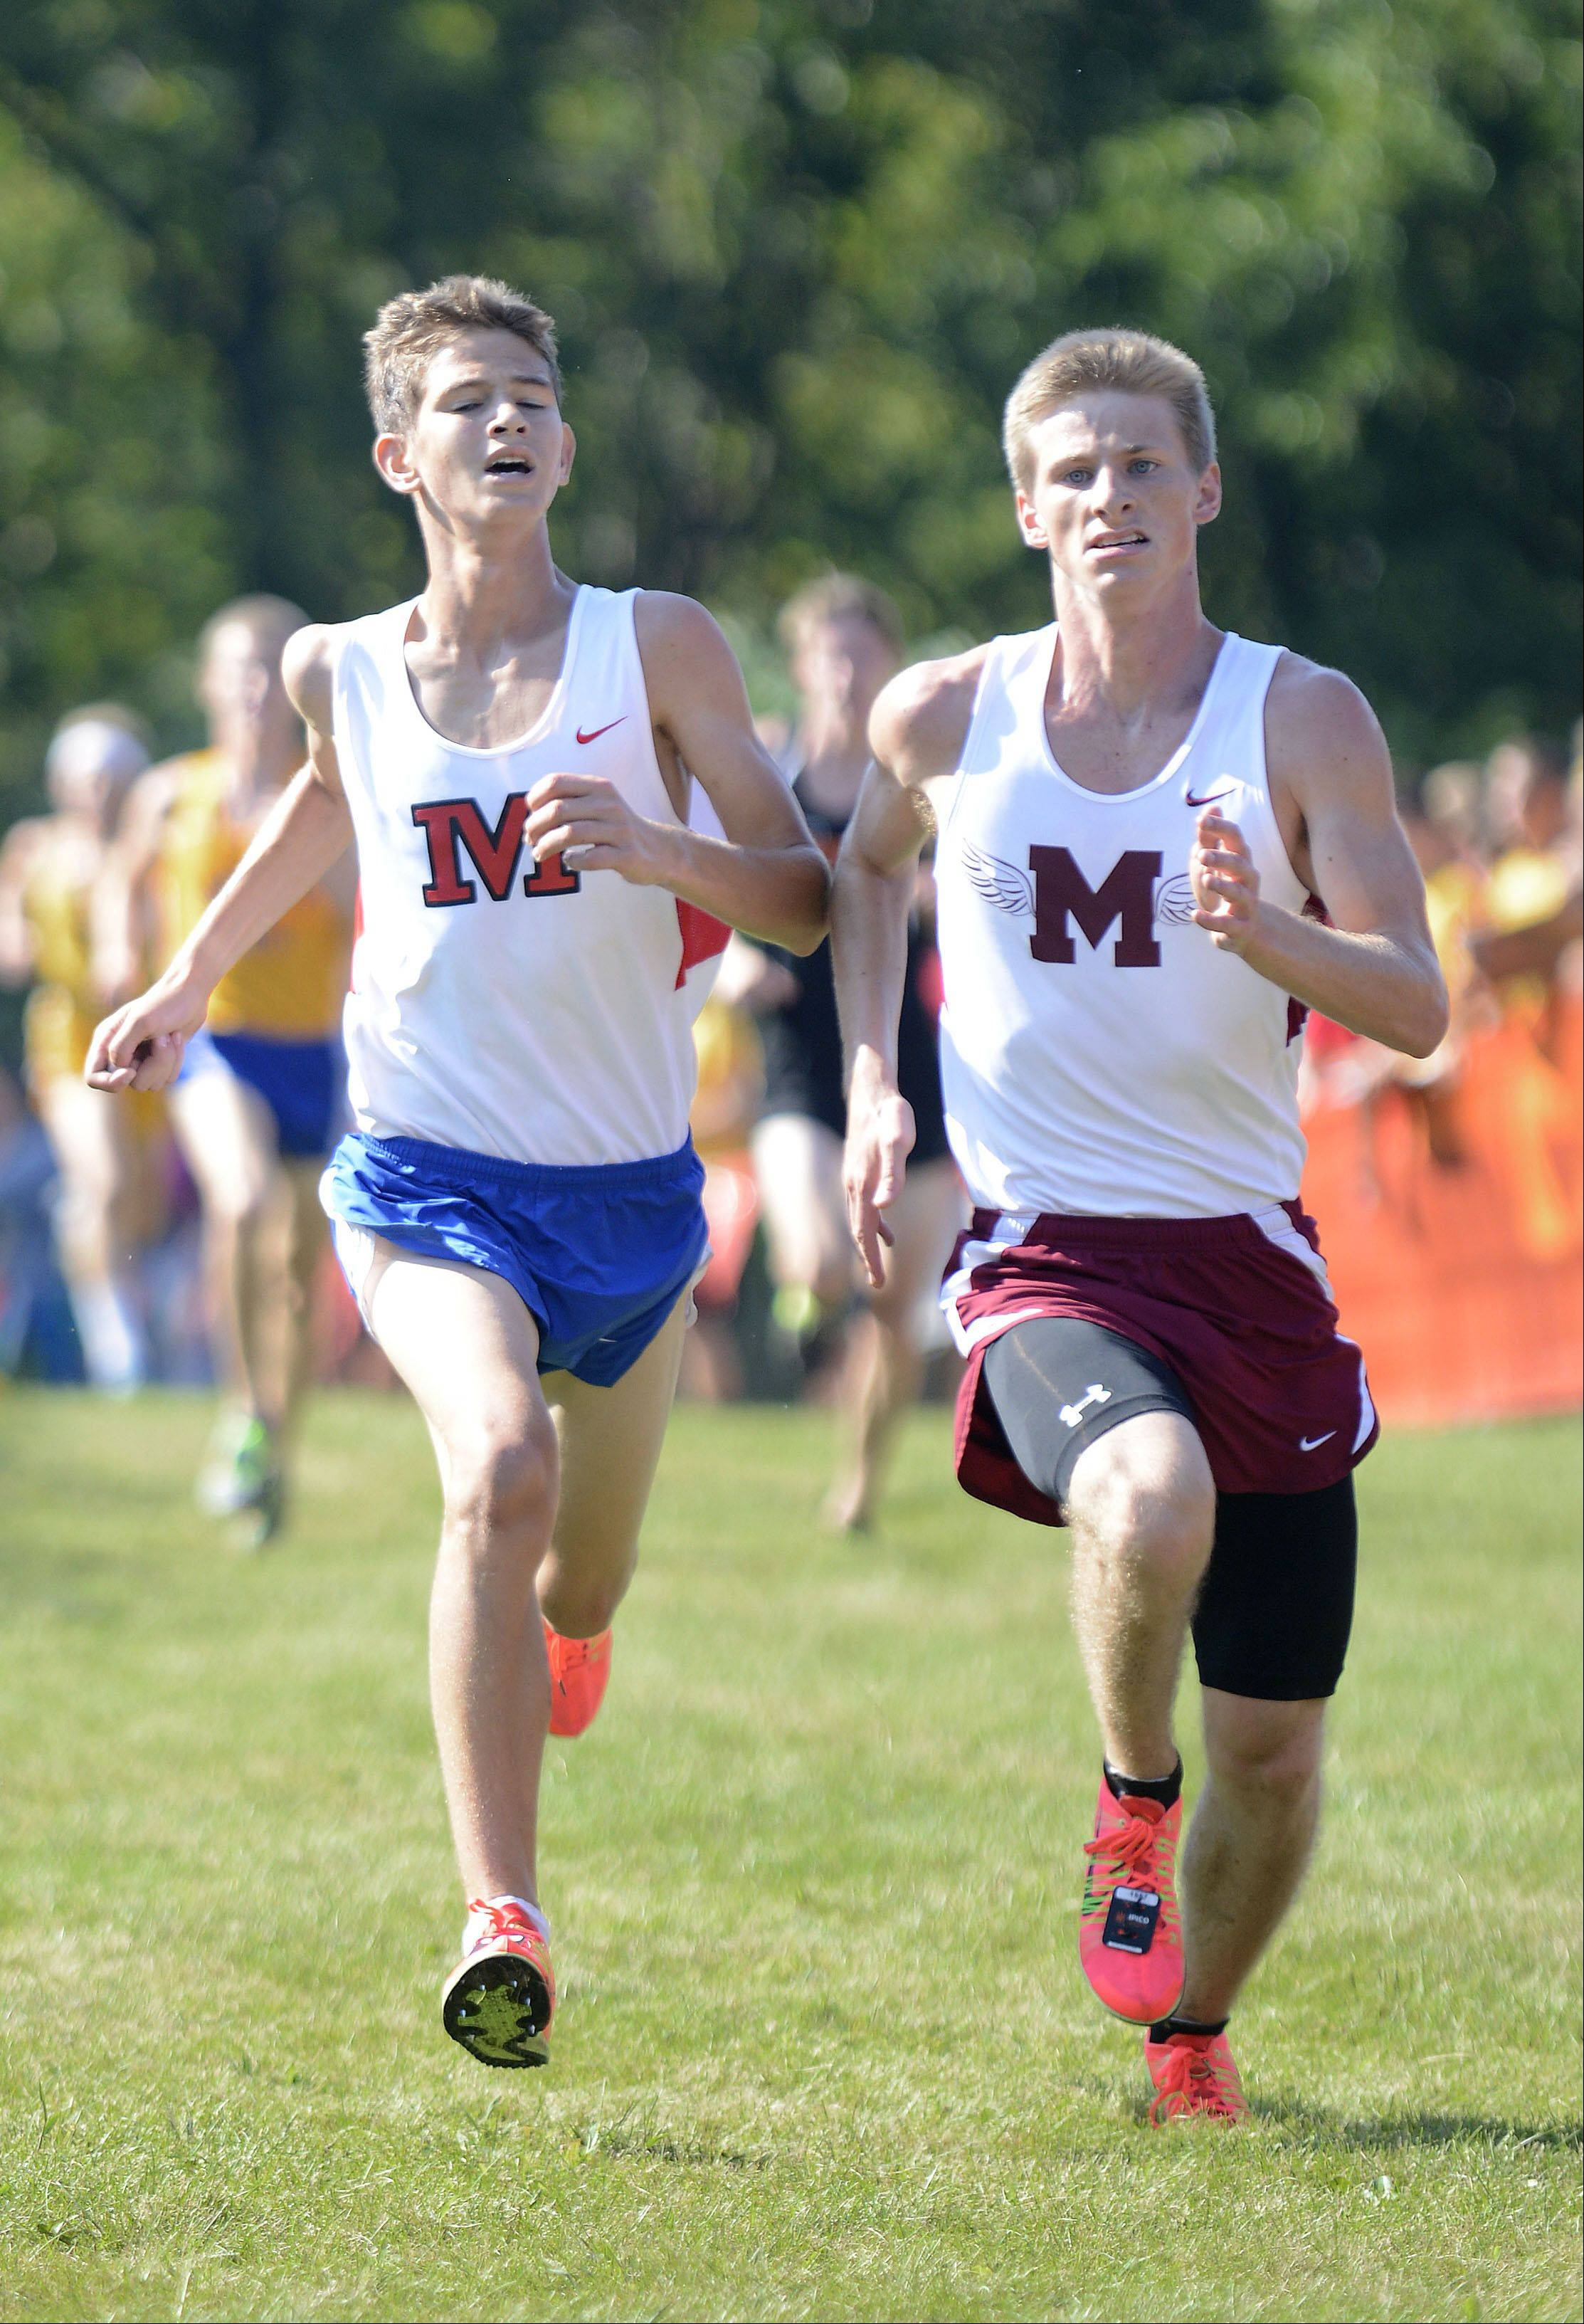 Marmion's Ethan Young, left, and Elgin's Zach Gray fight to the finish line in the meet at Leroy Oakes Forest Preserve in St. Charles on Saturday, September 7.